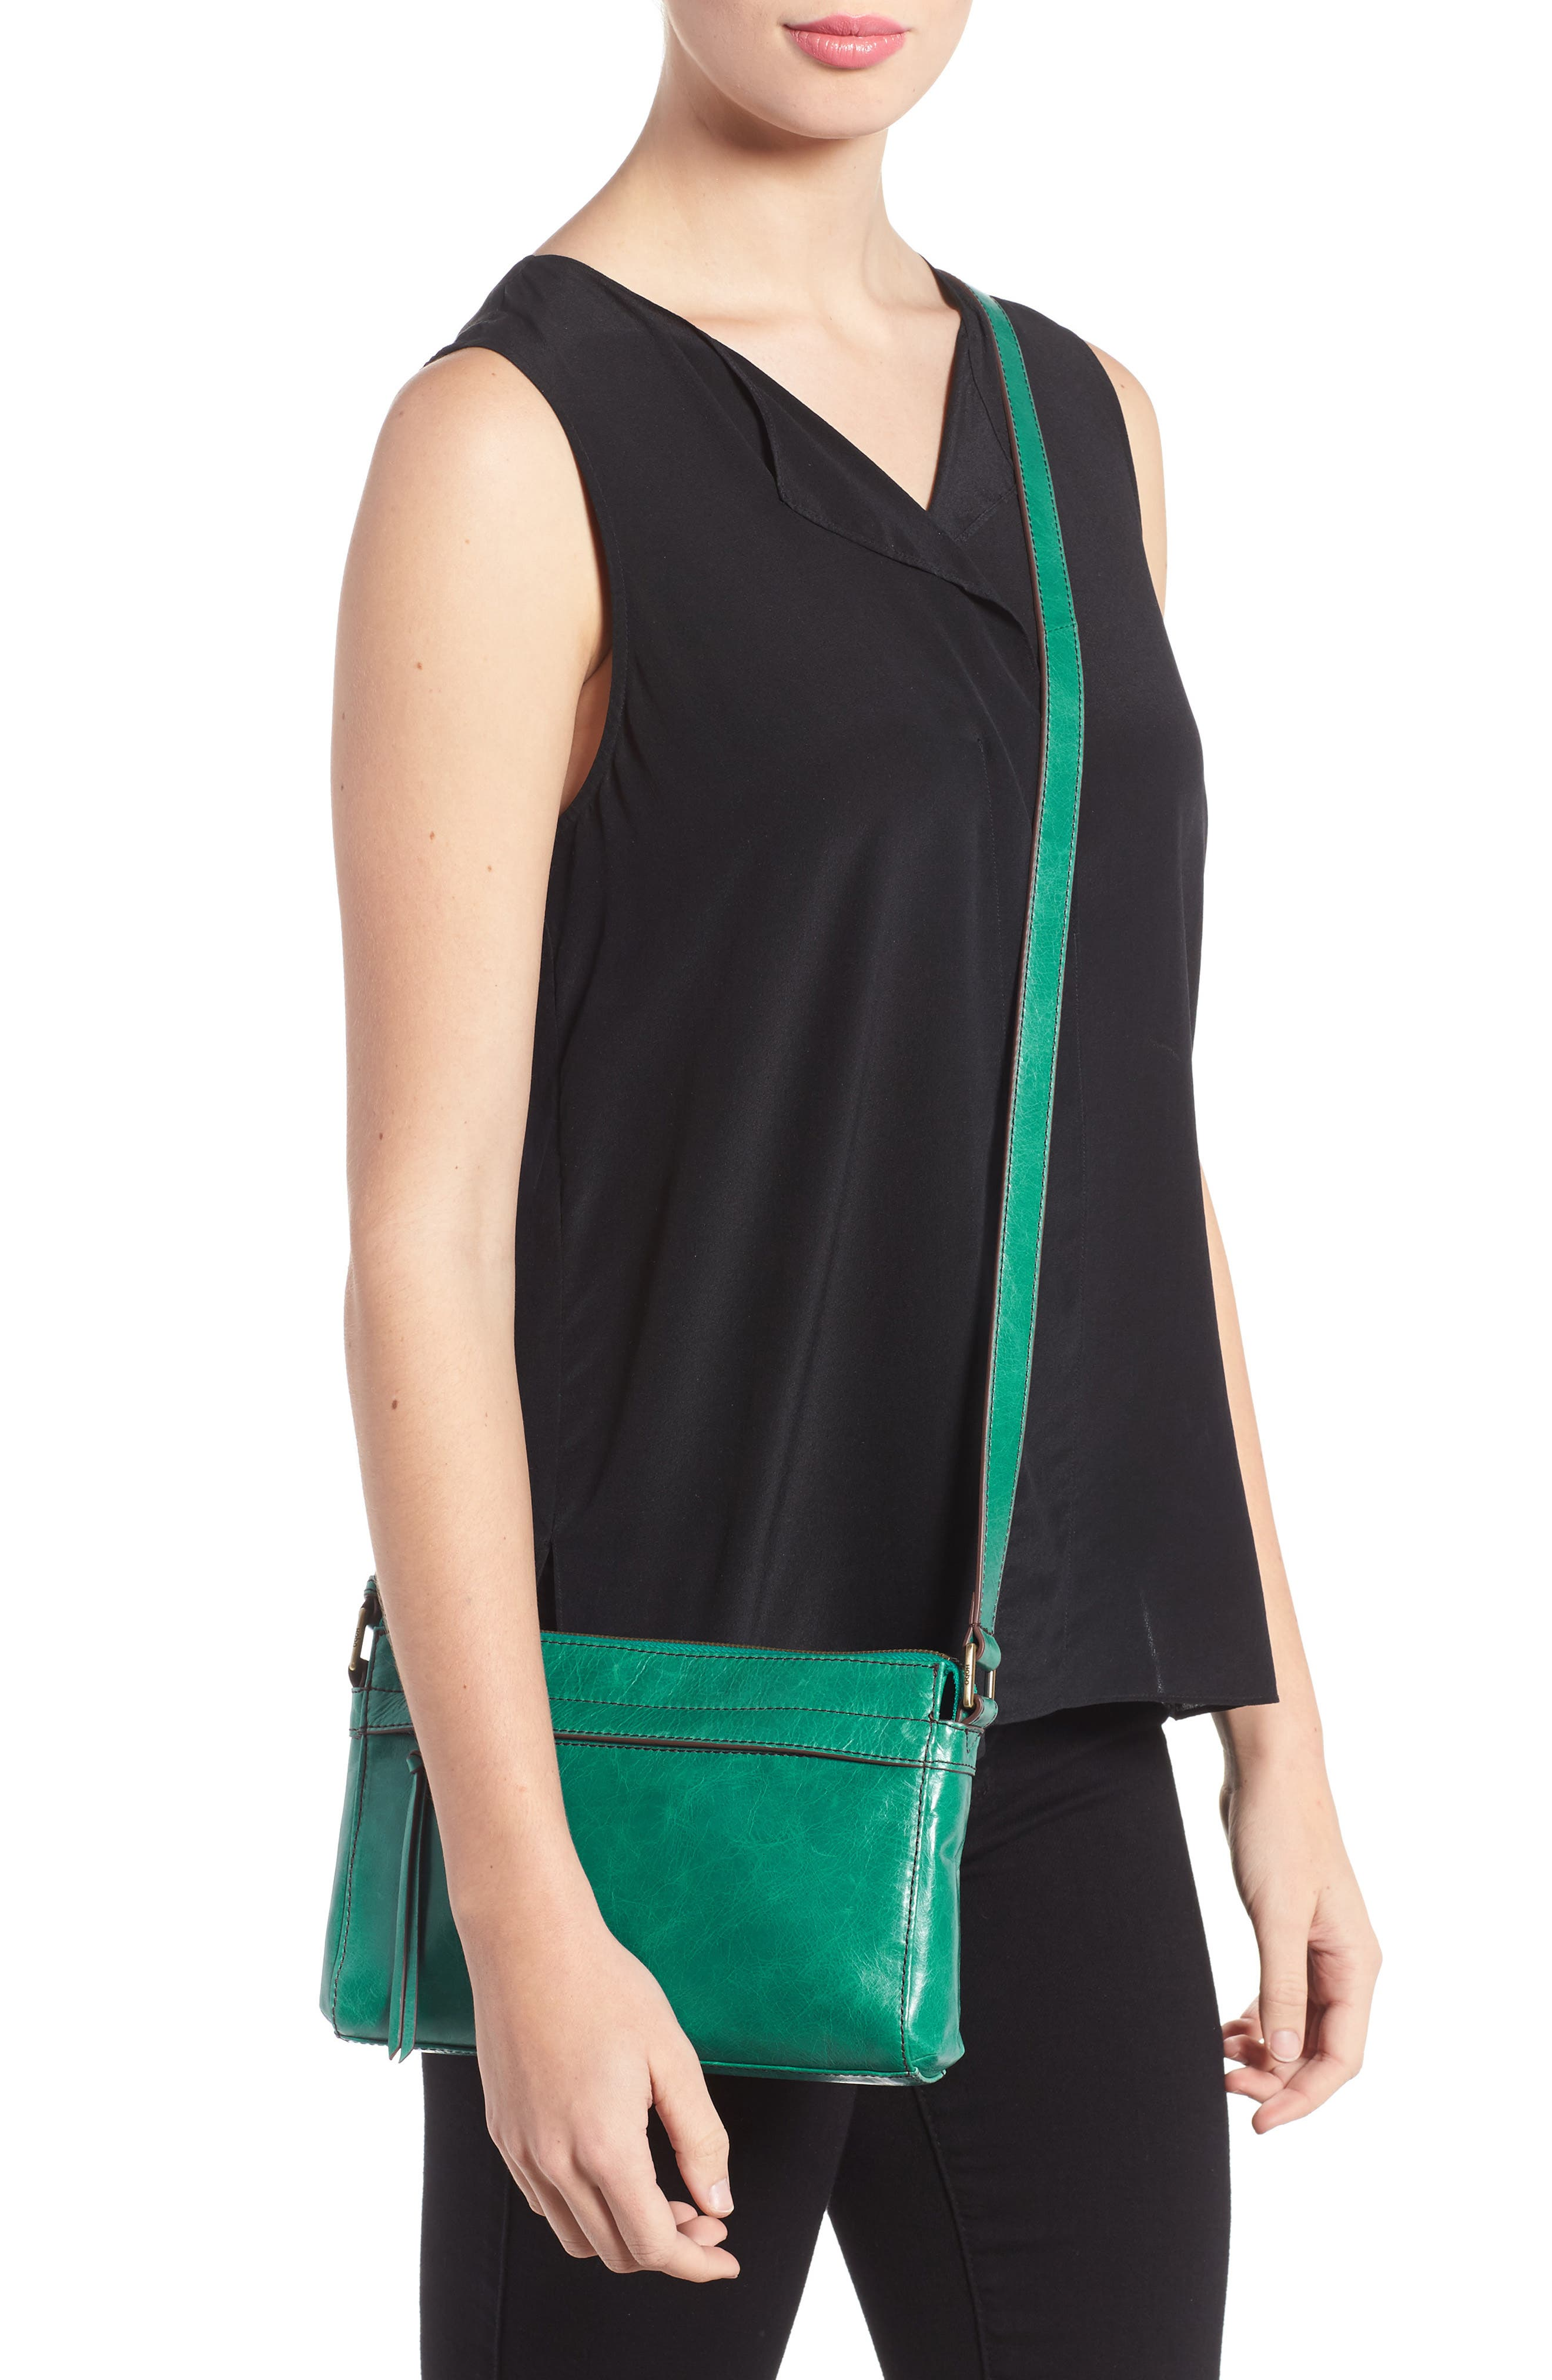 Tobey Leather Crossbody Bag,                             Alternate thumbnail 23, color,